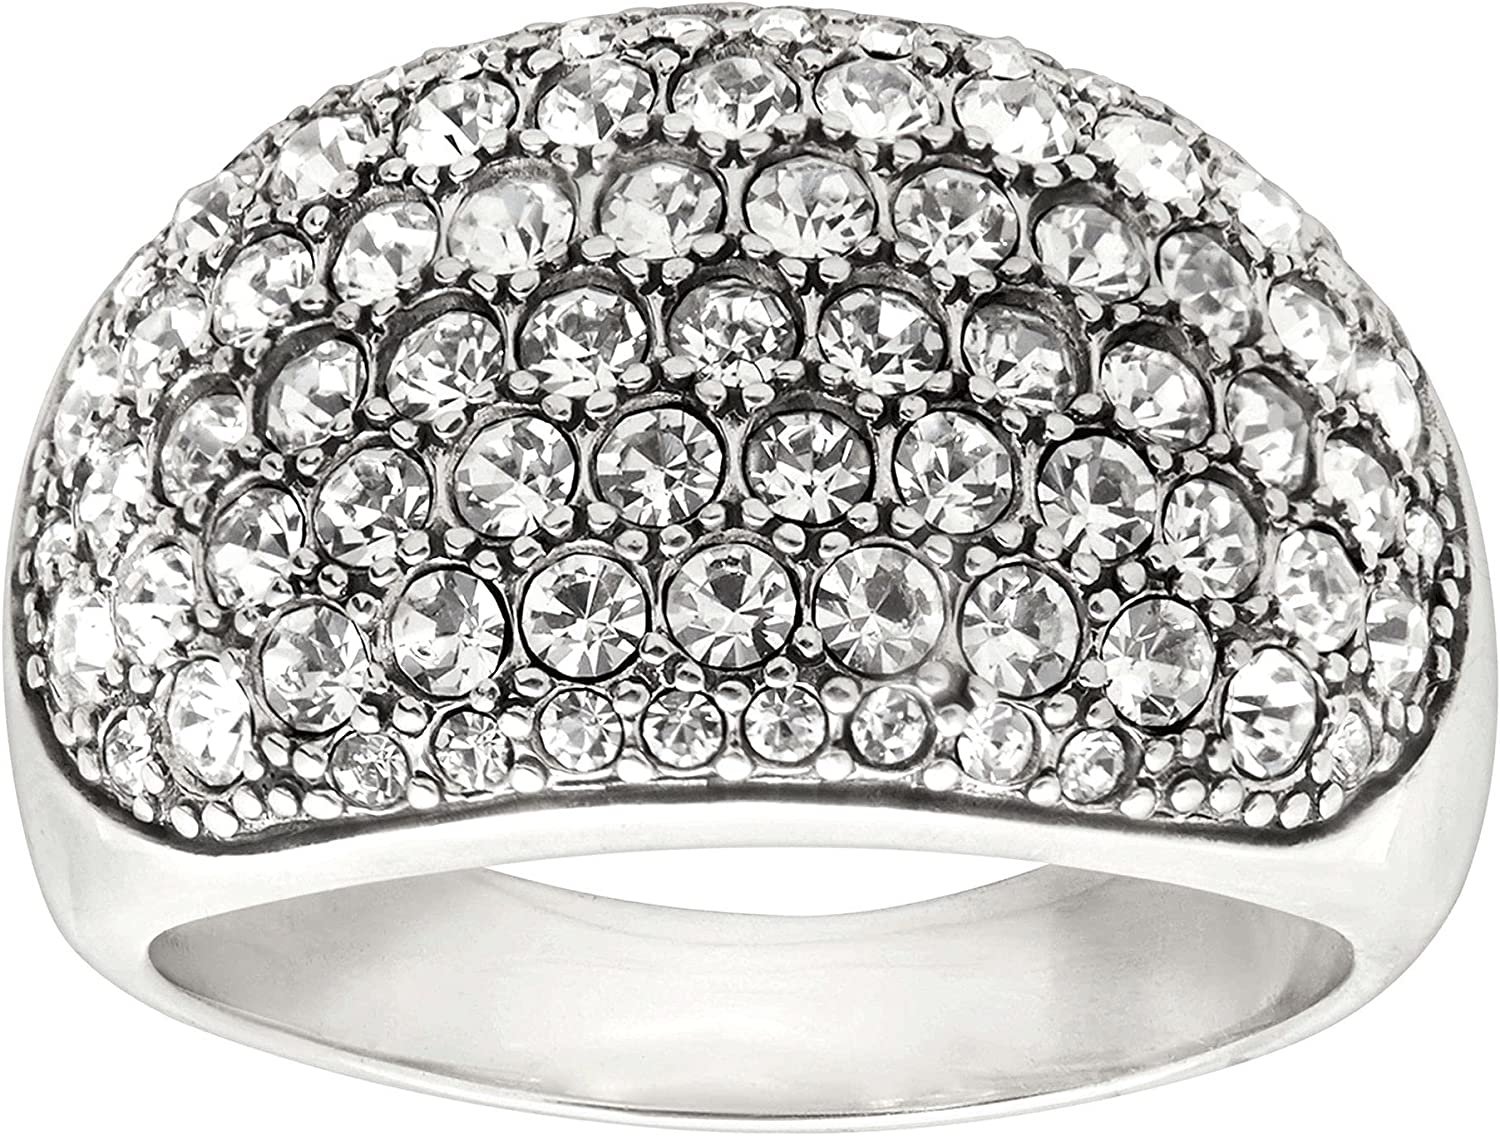 Silpada Large special price !! 'Embellished Pav�' Popular shop is the lowest price challenge Ring with in Sterling Silv Crystals